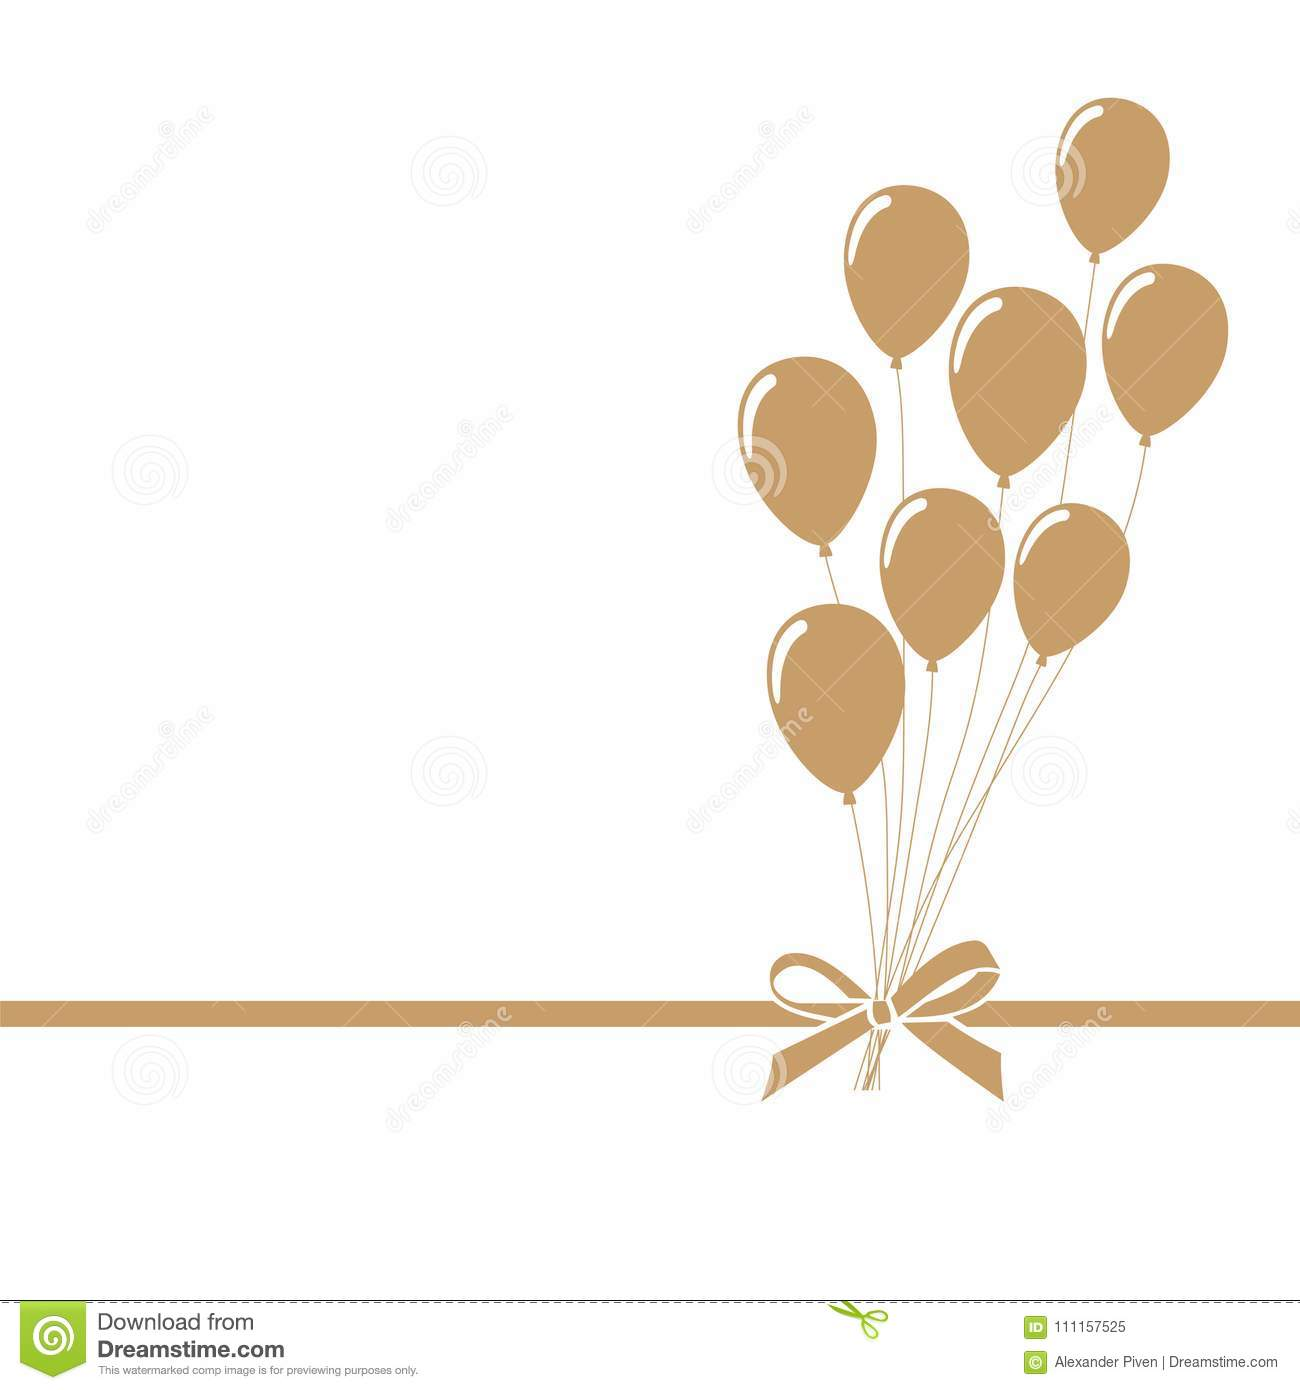 invitation greeting or gift card with party golden balloons with